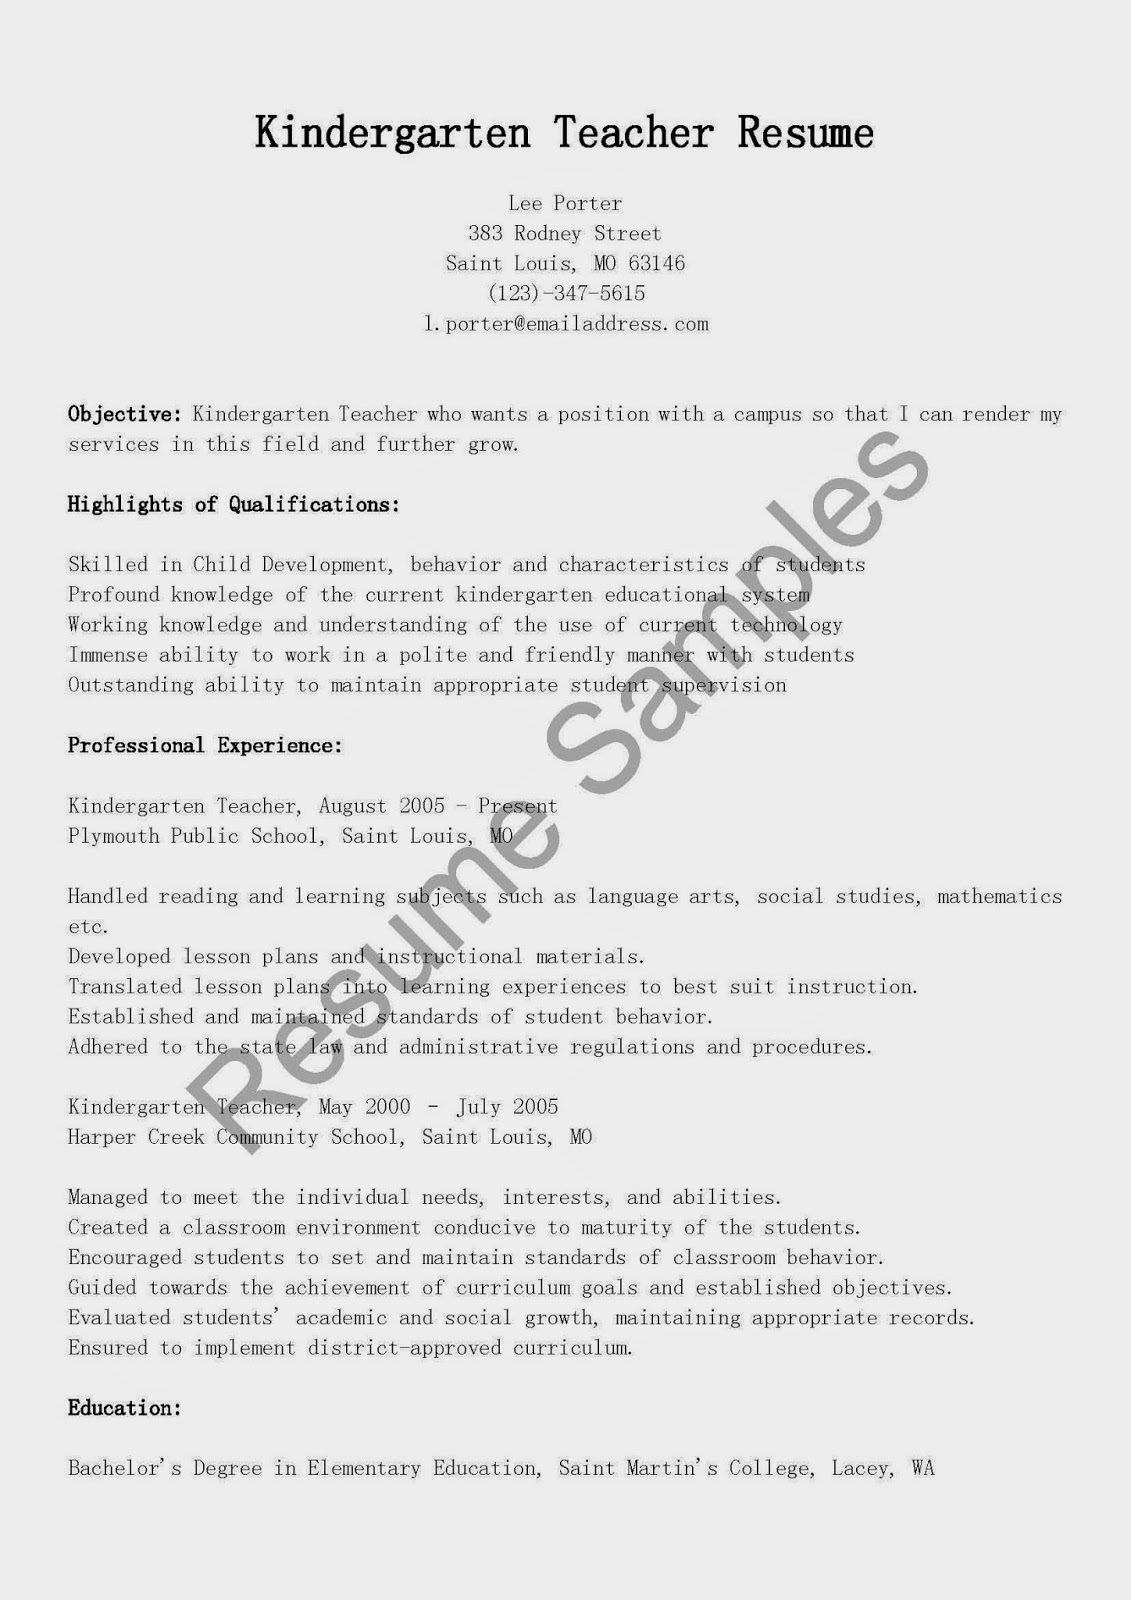 Sample it resumessume samples kindergarten teacher resume sample resume samples kindergarten teacher resume sample spiritdancerdesigns